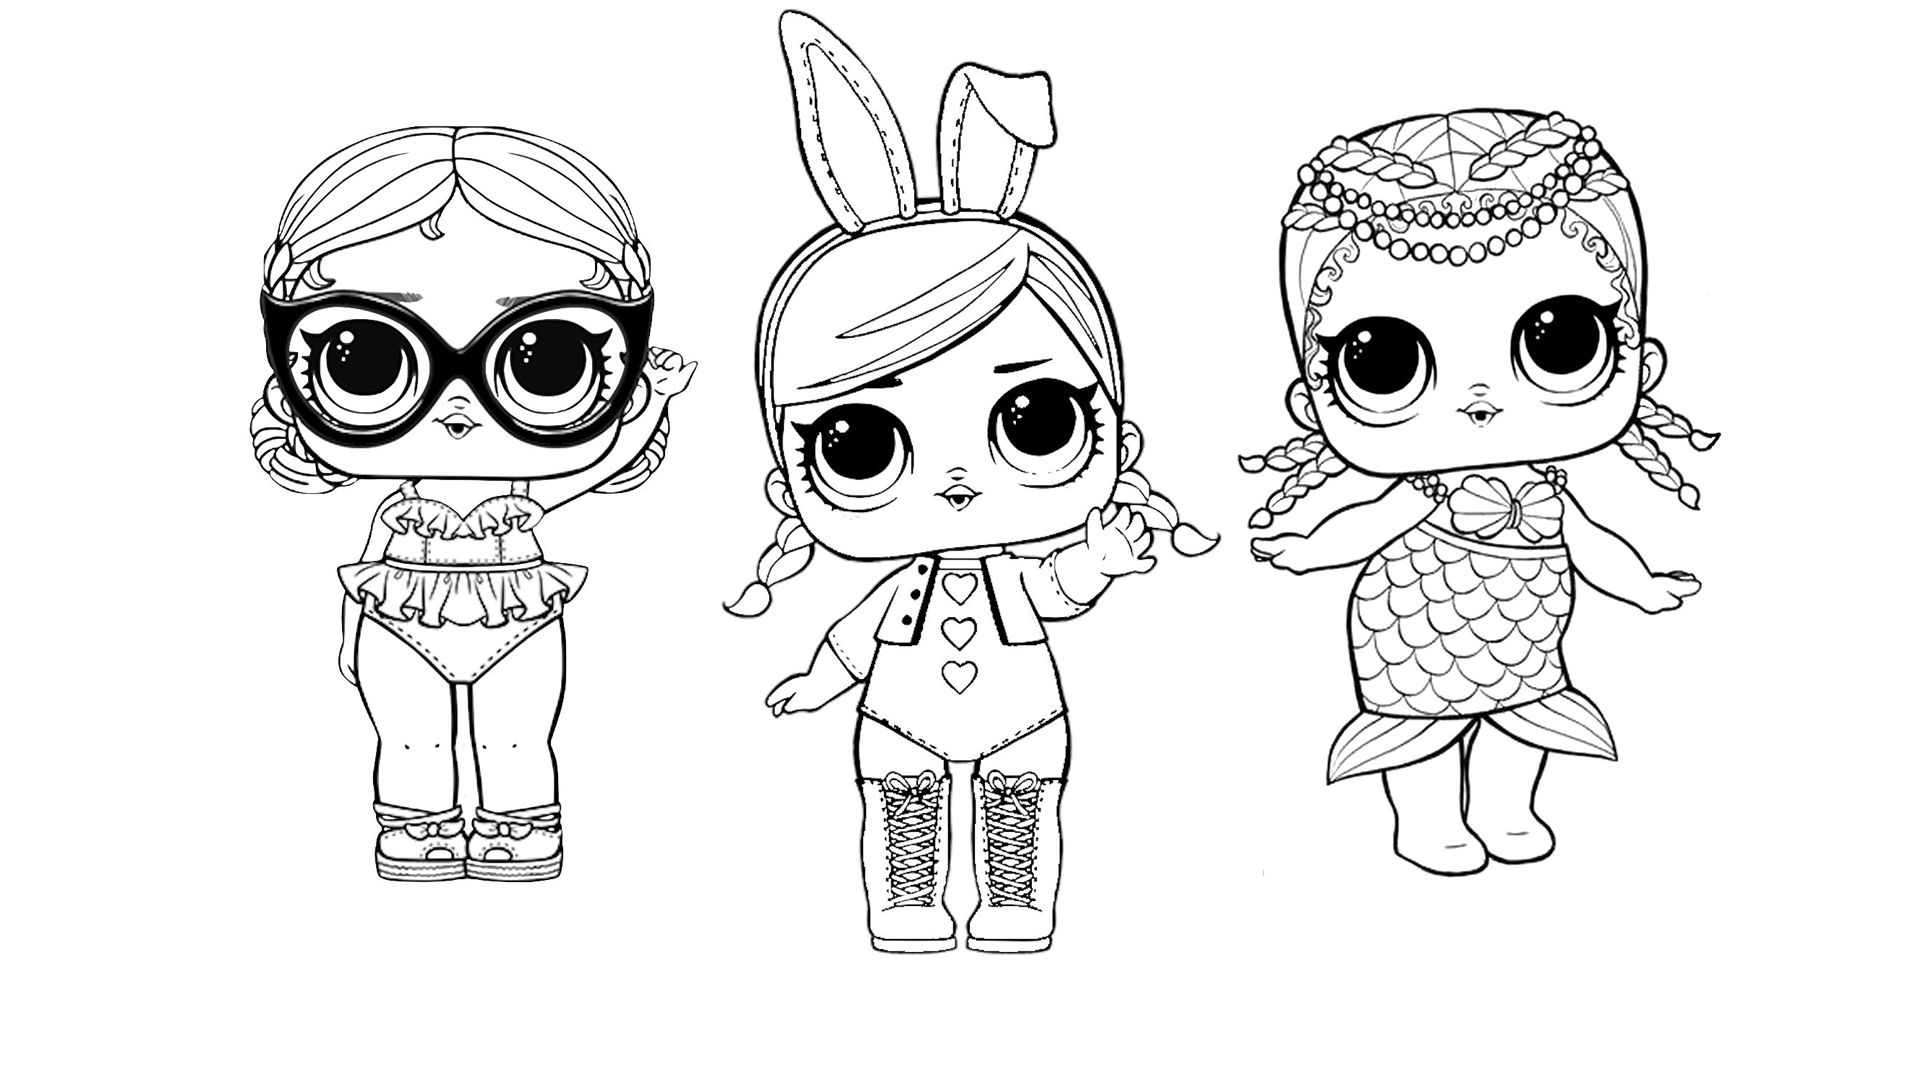 Hi It S Lol Surprise Dolls Coloring Book Compilation I Will Colour Lol Surprise Dolls Vacay Baby Hops And Merbaby Coloring Books Lol Dolls Coloring Pages